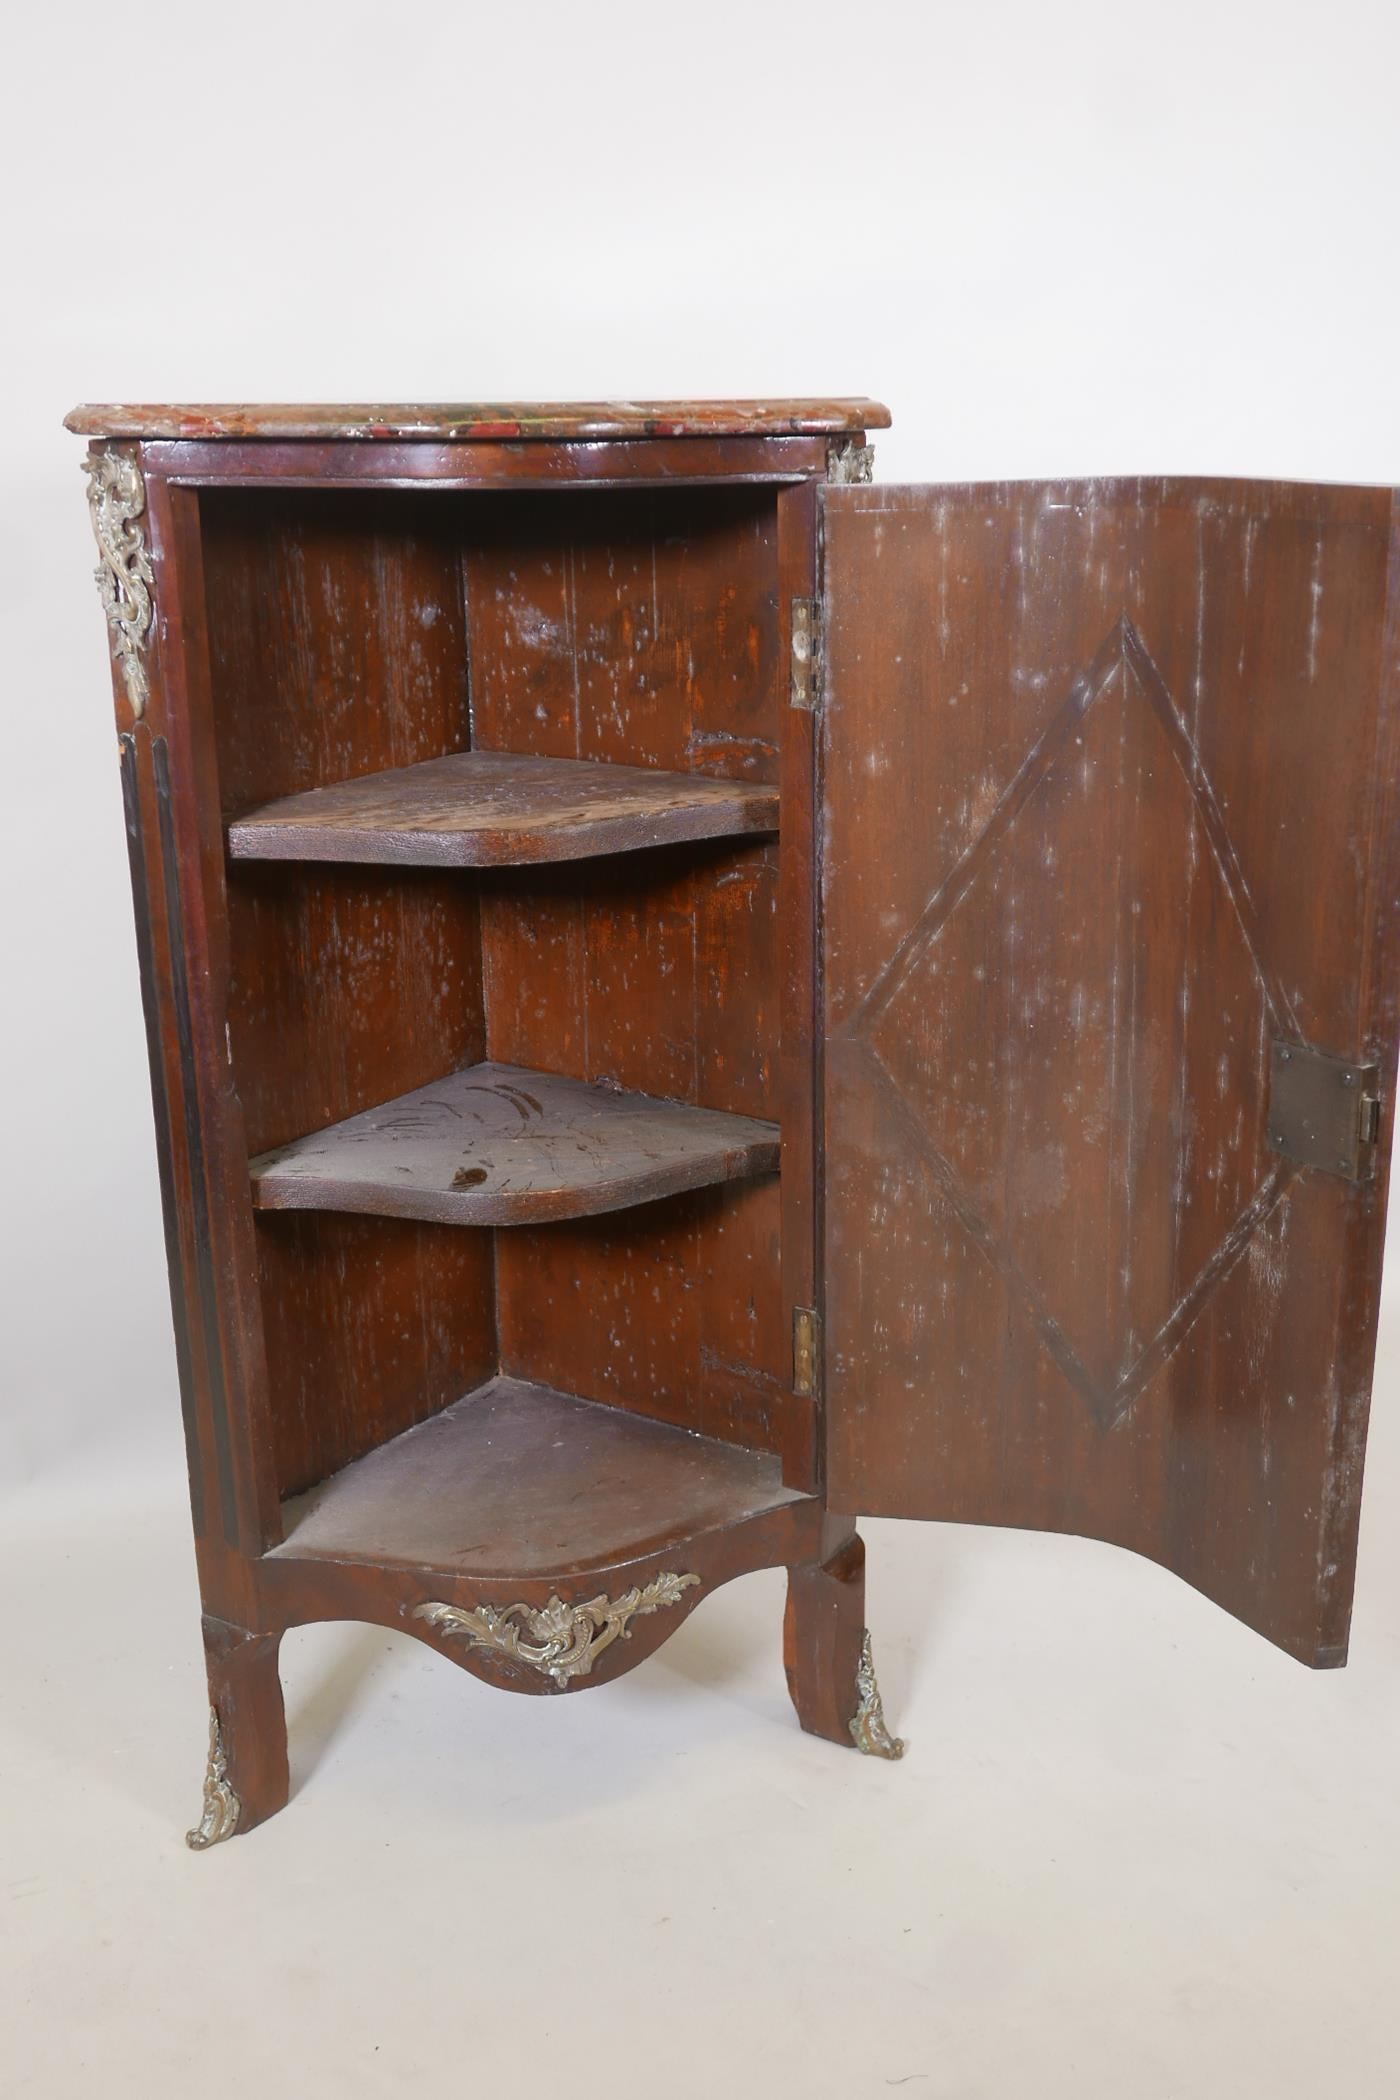 An early C19th French inlaid standing corner cupboard, with rouge marble top and serpentine front - Image 3 of 4